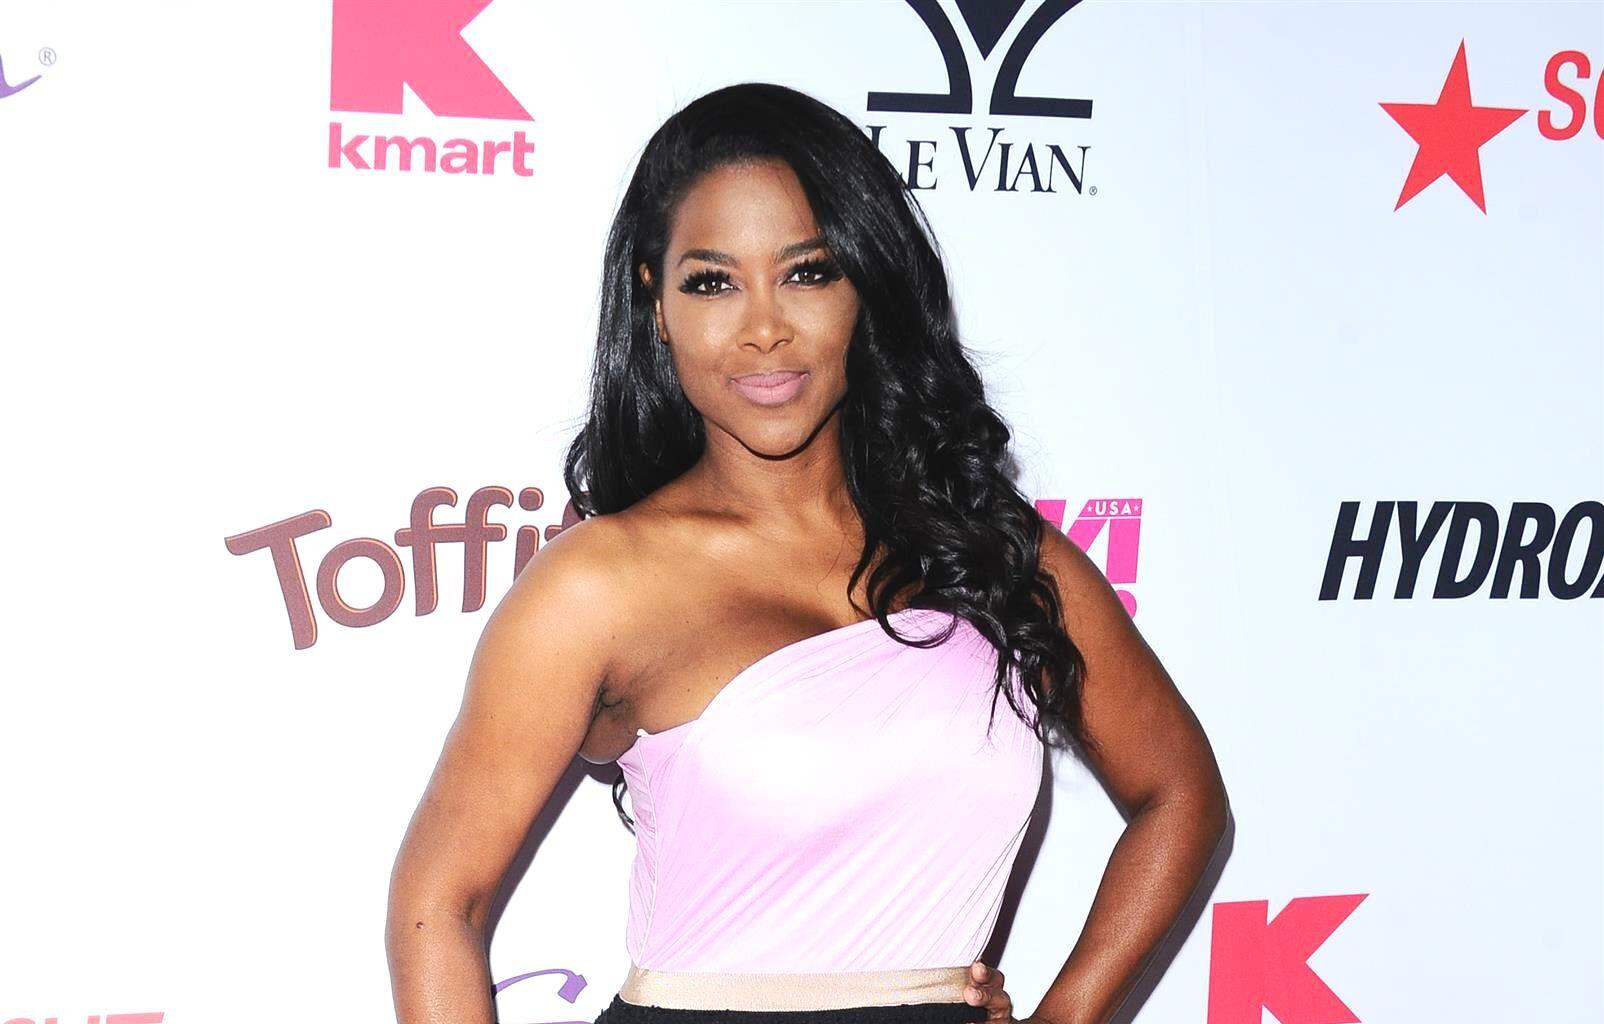 Kenya Moore Shares A Clip About Kenya Moore Hair Which Has Fans In Awe - Check It Out Here